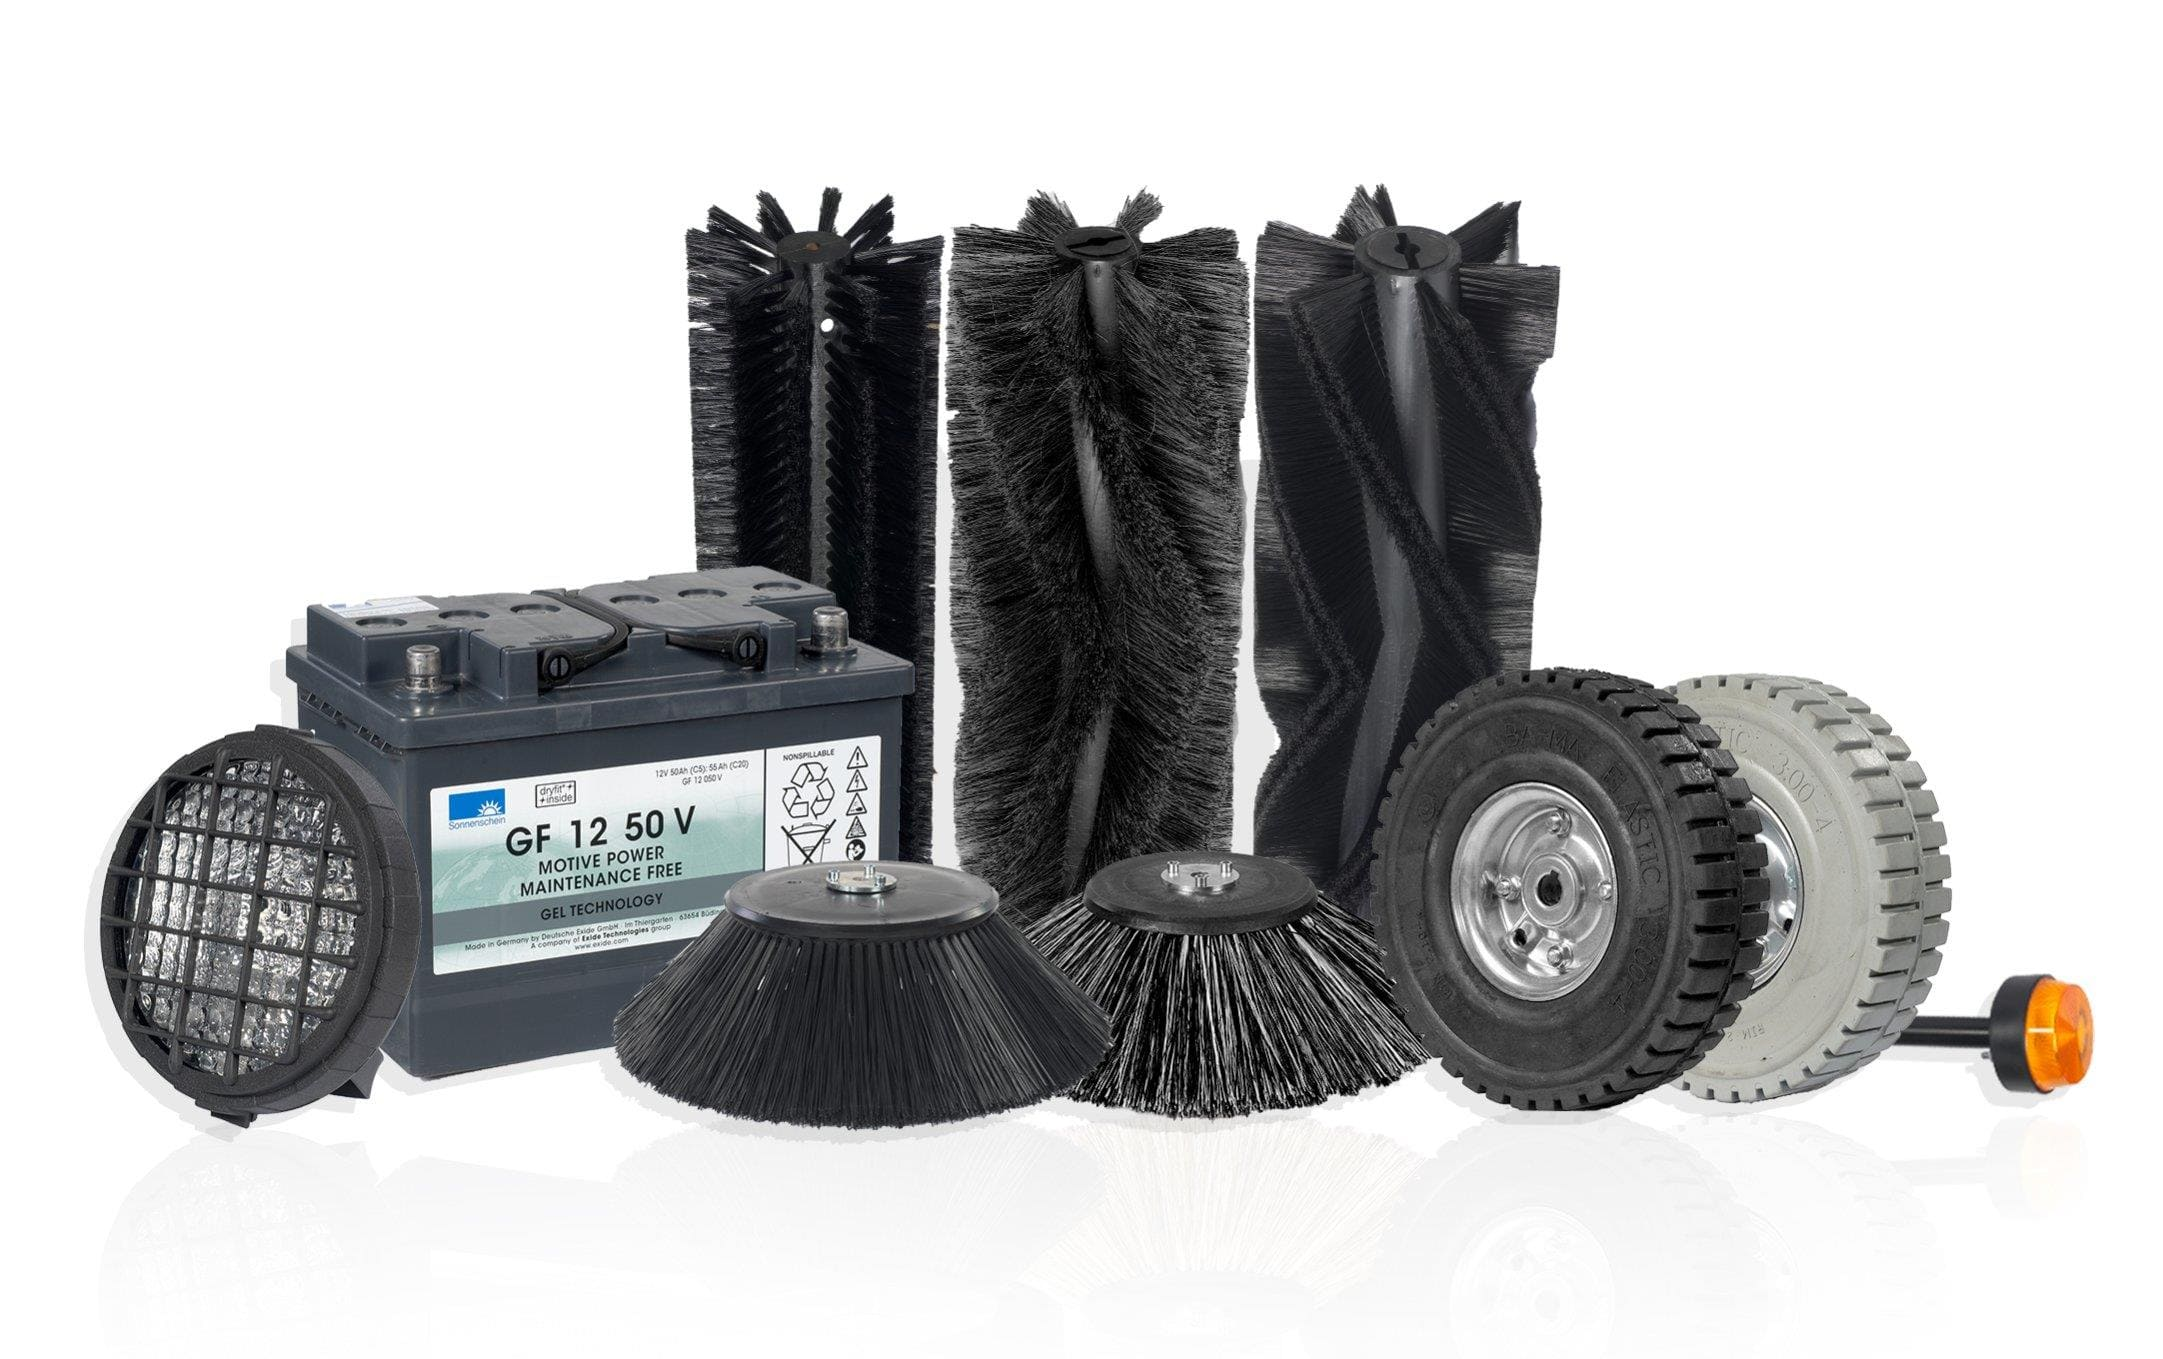 Replacement Consumables, such as brushes, wheels, batteries, lights, beacons, skirts, squeegee blades.